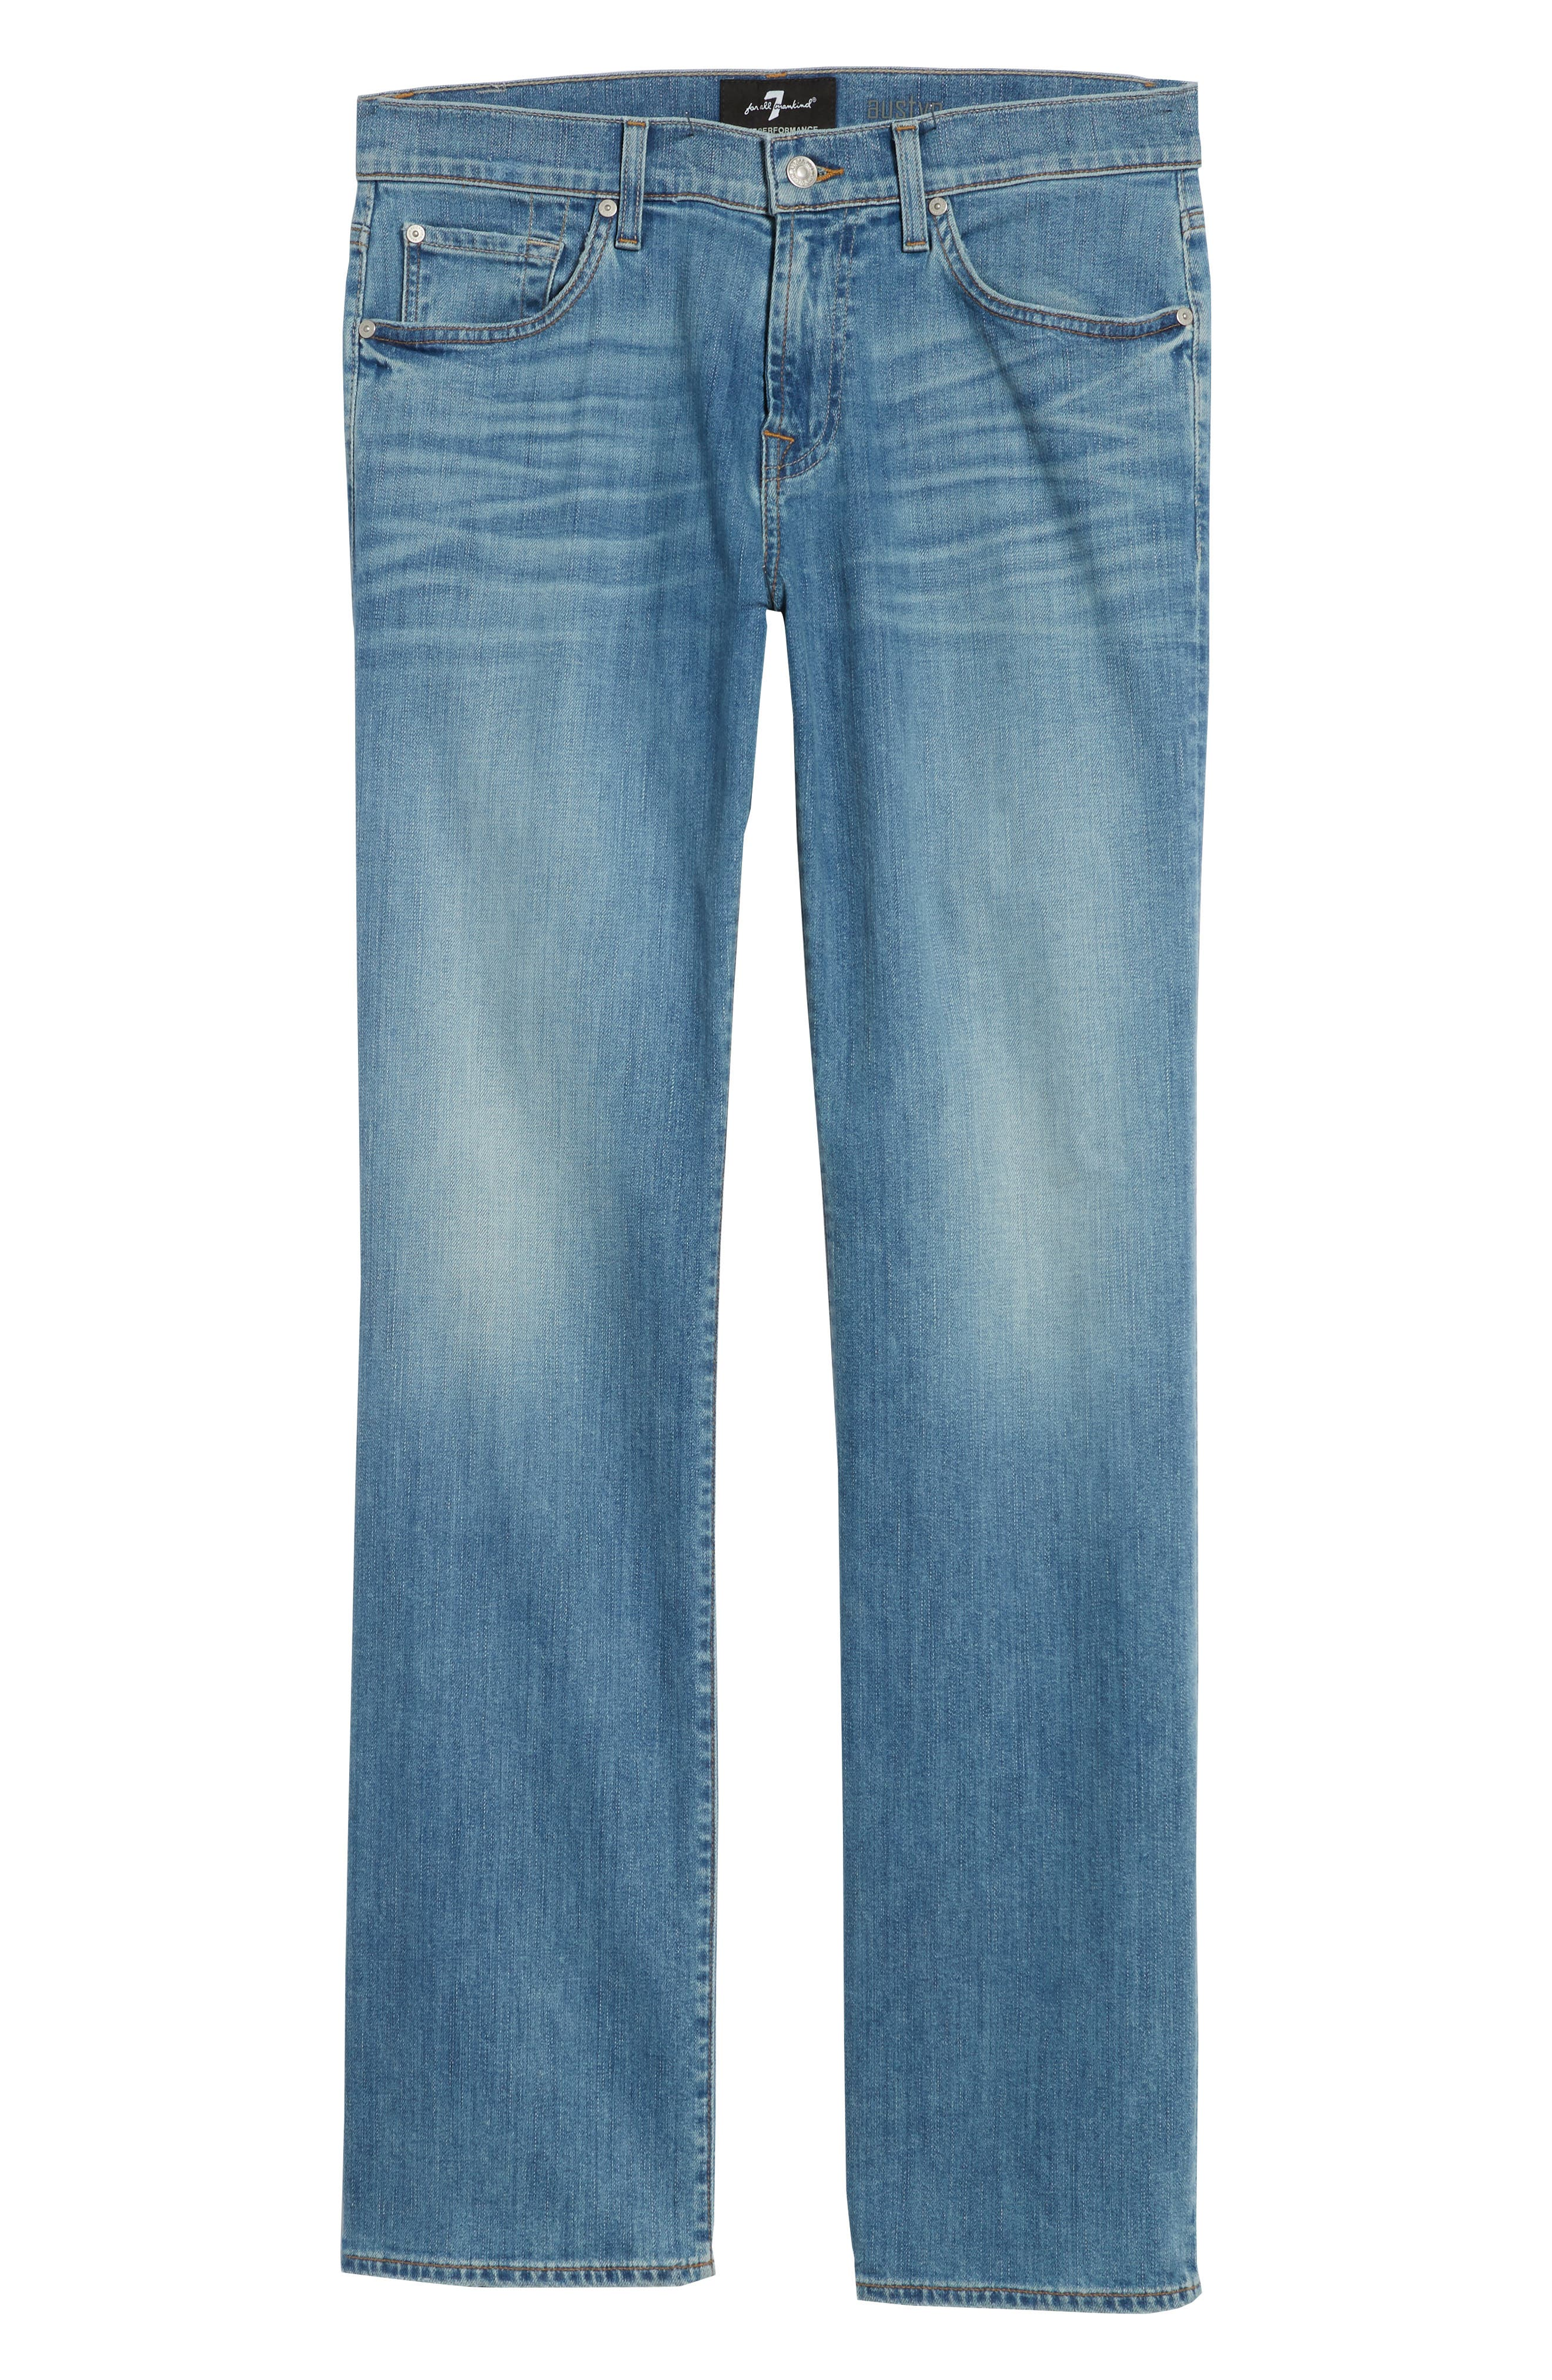 Austyn - Luxe Performance Relaxed Fit Jeans,                             Alternate thumbnail 6, color,                             Vahalla